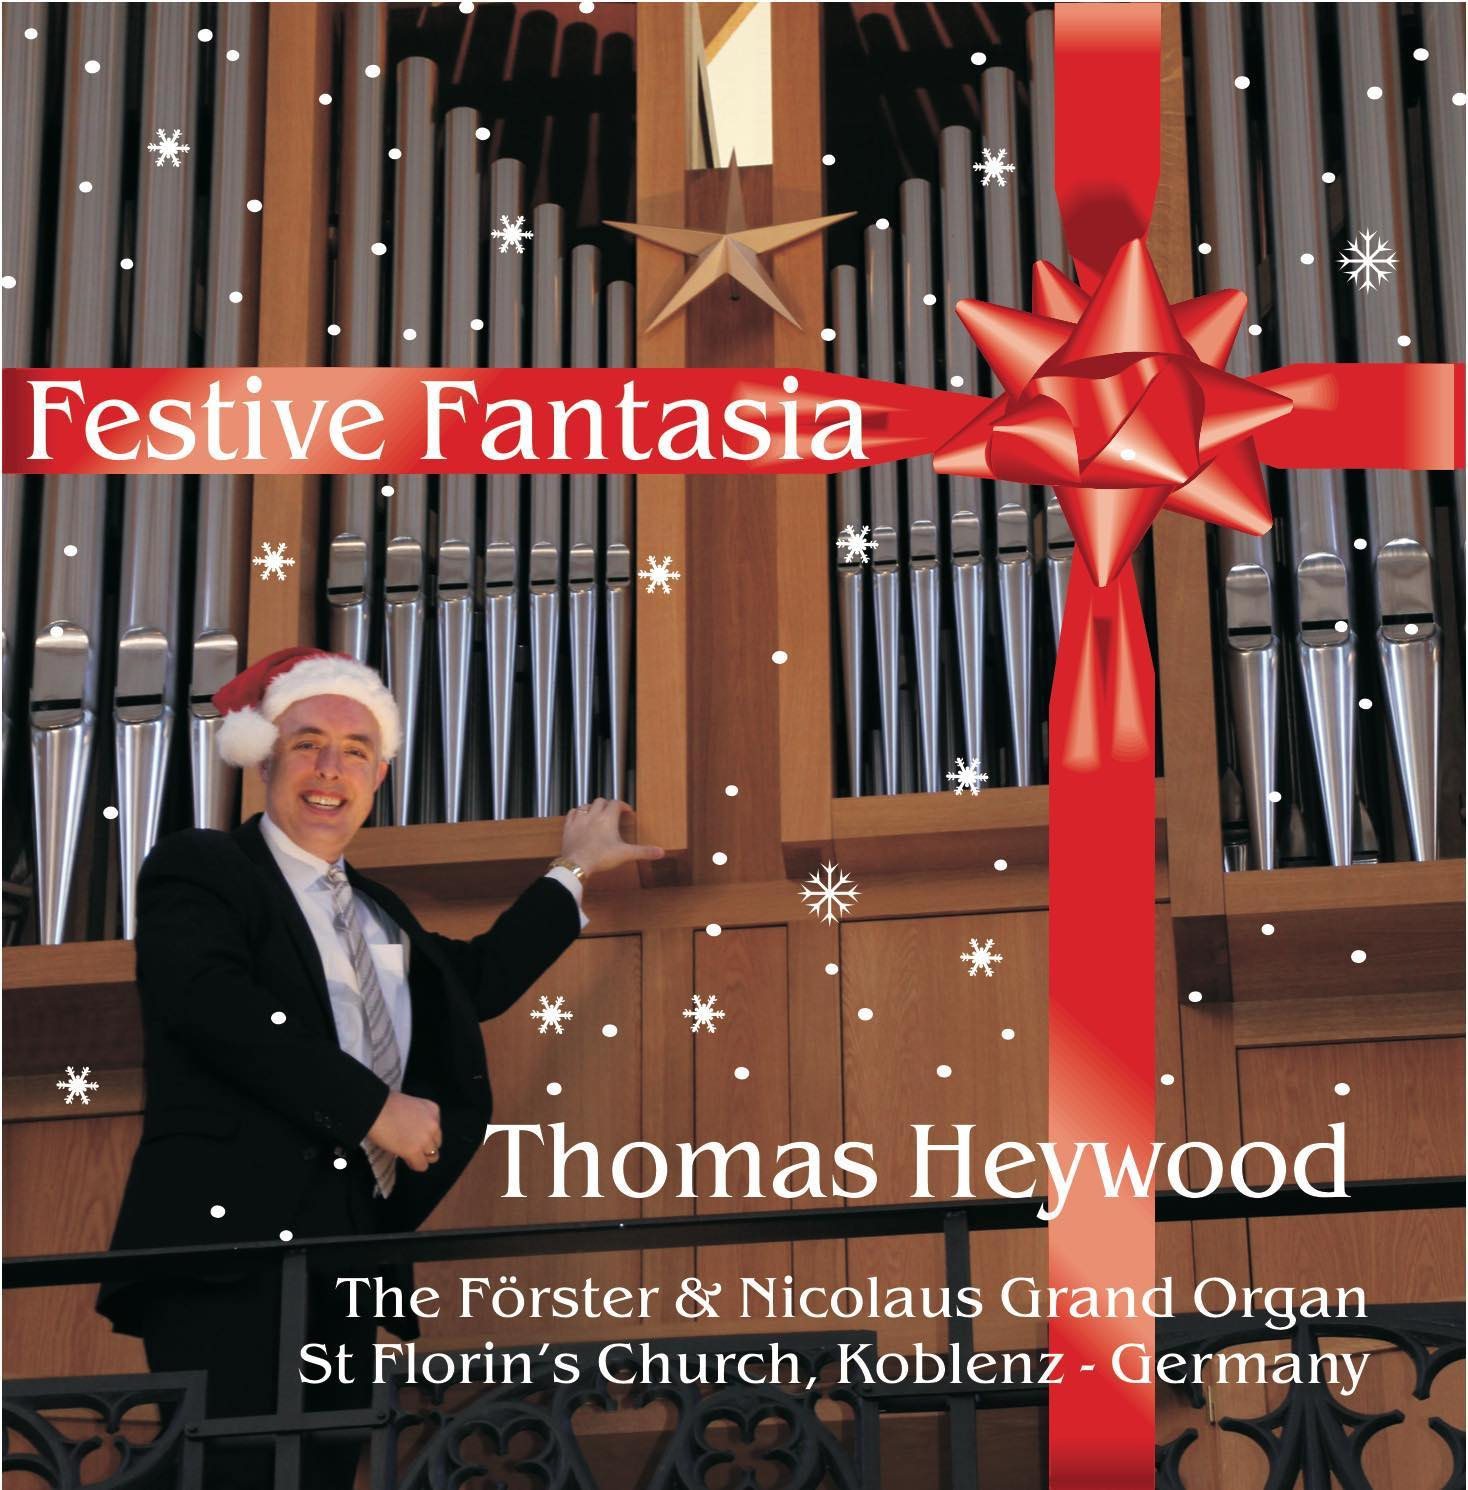 Festive Fantasia (MP3 Album) | Thomas Heywood | Concert Organ International